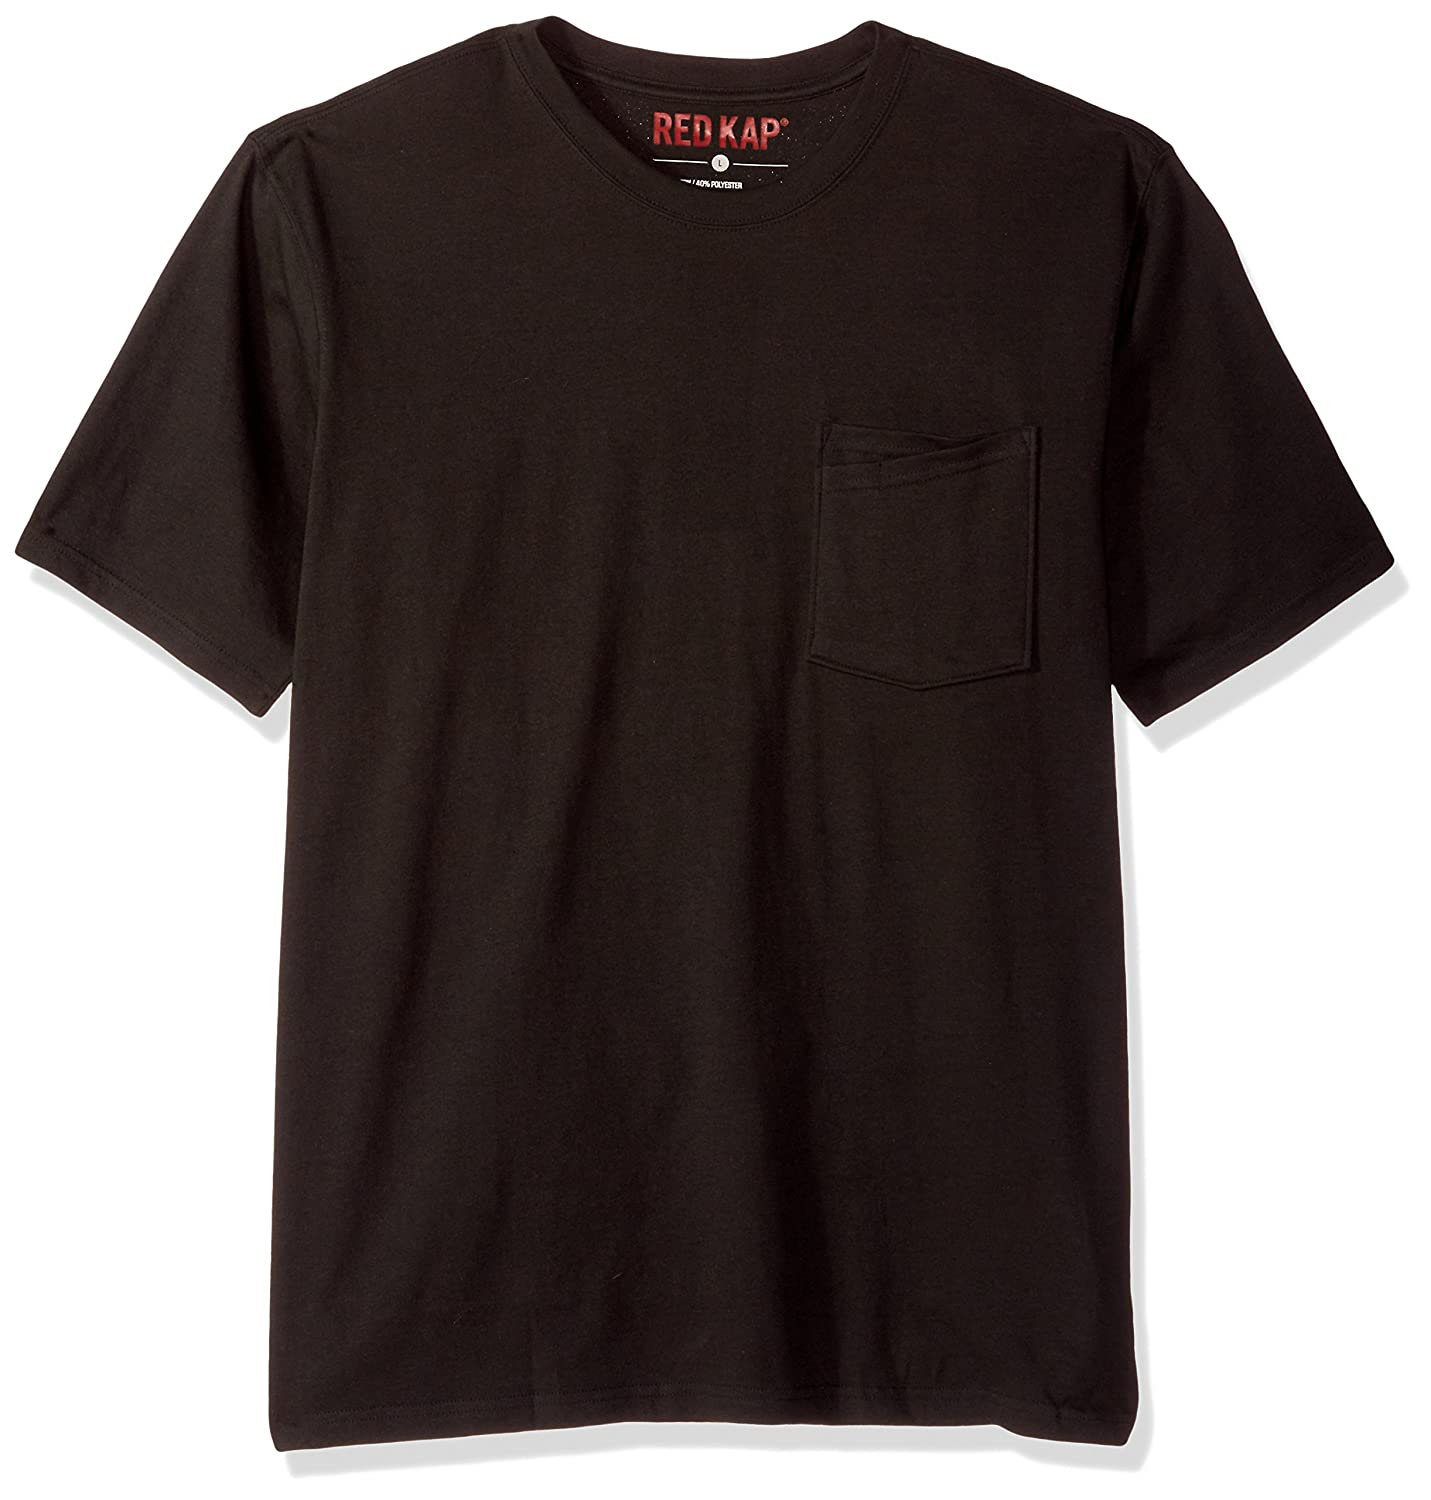 Red Kap mens Solid Color T-shirt Red Kap Men' s Apparel RT30